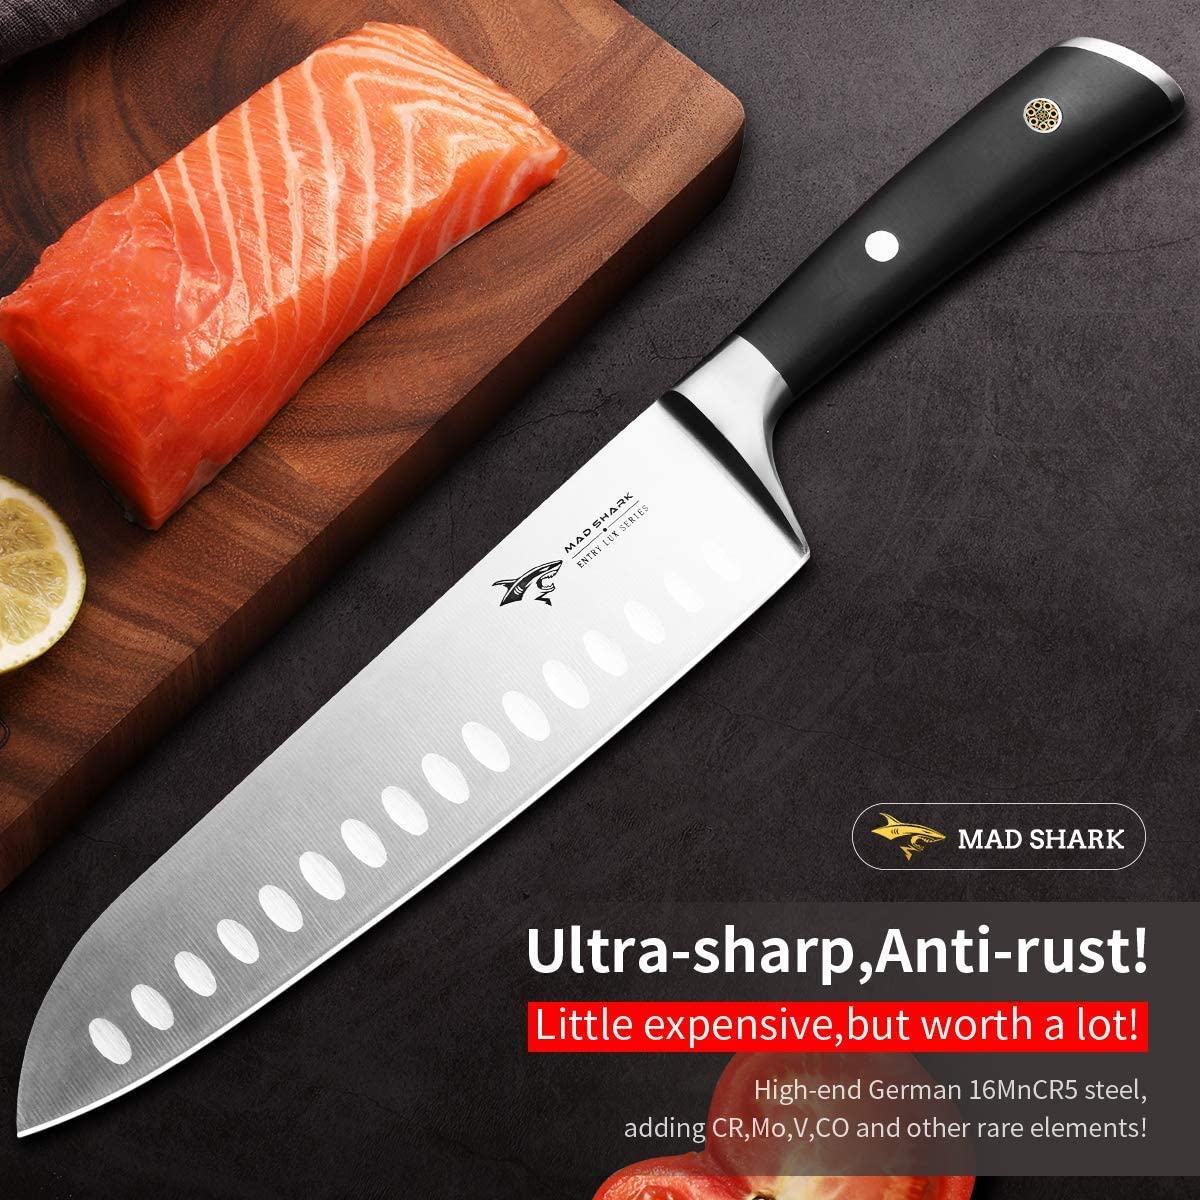 Santoku Knife Professional - MAD SHARK Chefs Knife 8 Inch Japanese Kitchen Knives,Best Quality German Carbon Stainless Steel Knife with Ergonomic Handle,Ultra Sharp,Best for Home and Restaurant